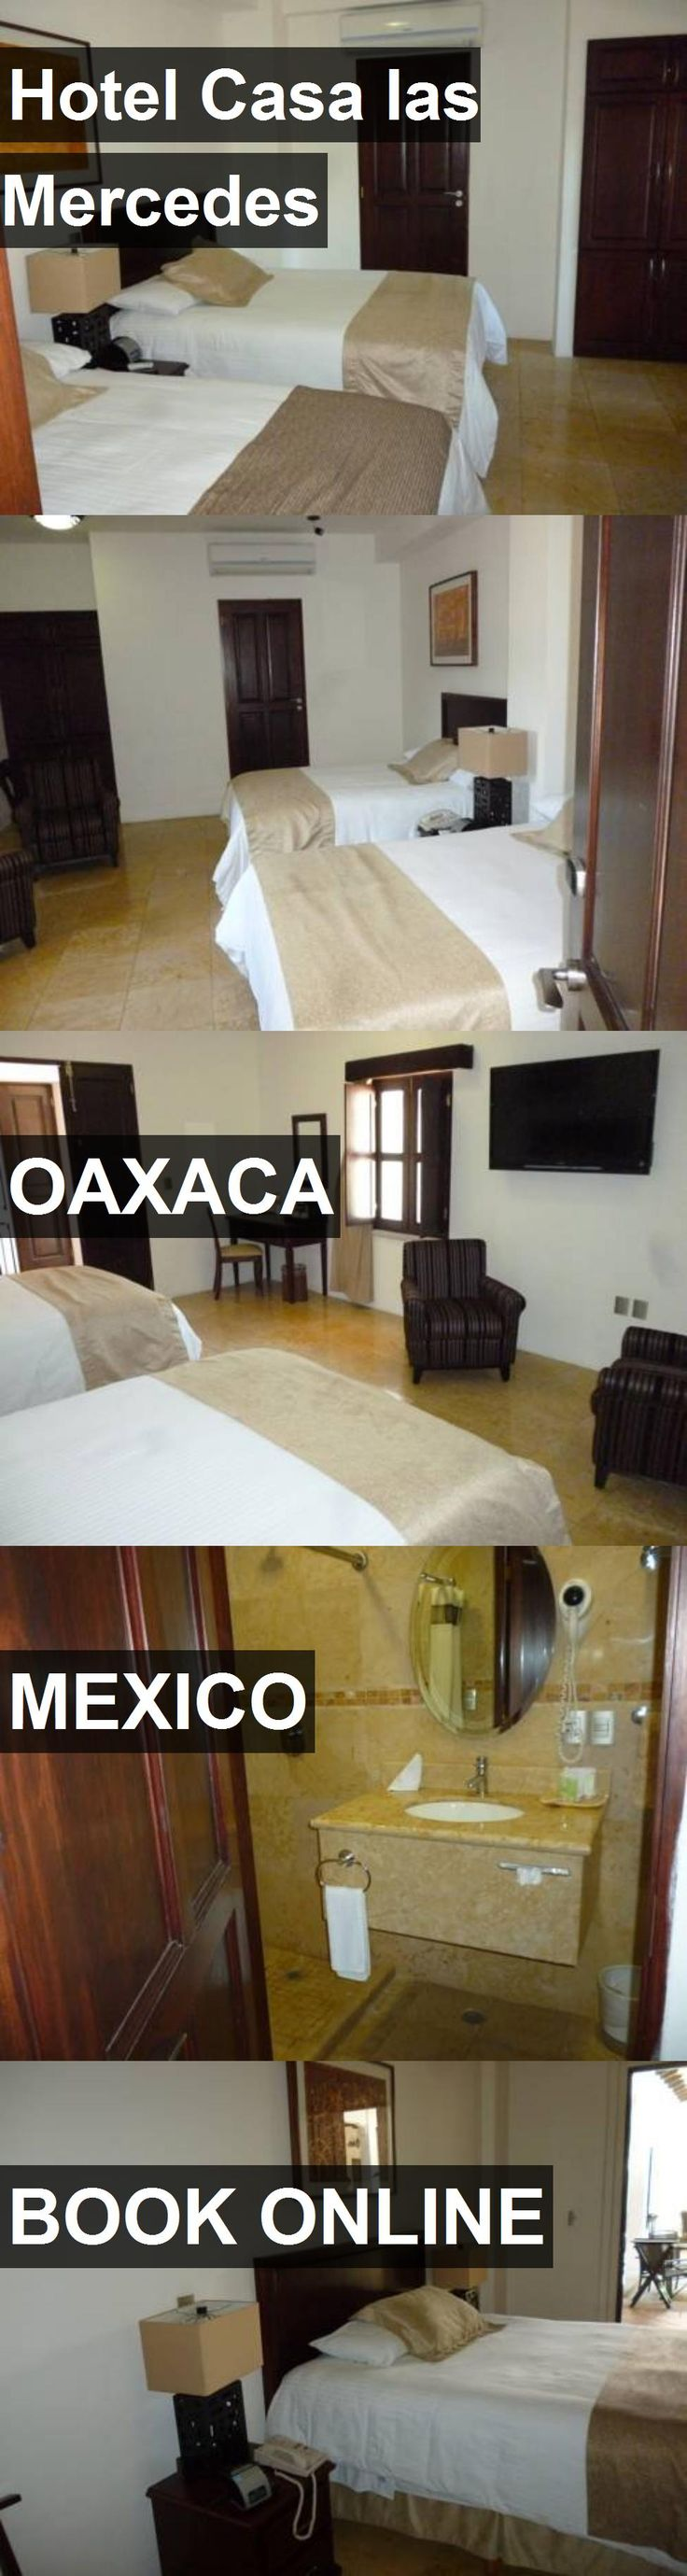 Hotel Casa las Mercedes in Oaxaca, Mexico. For more information, photos, reviews and best prices please follow the link. #Mexico #Oaxaca #travel #vacation #hotel